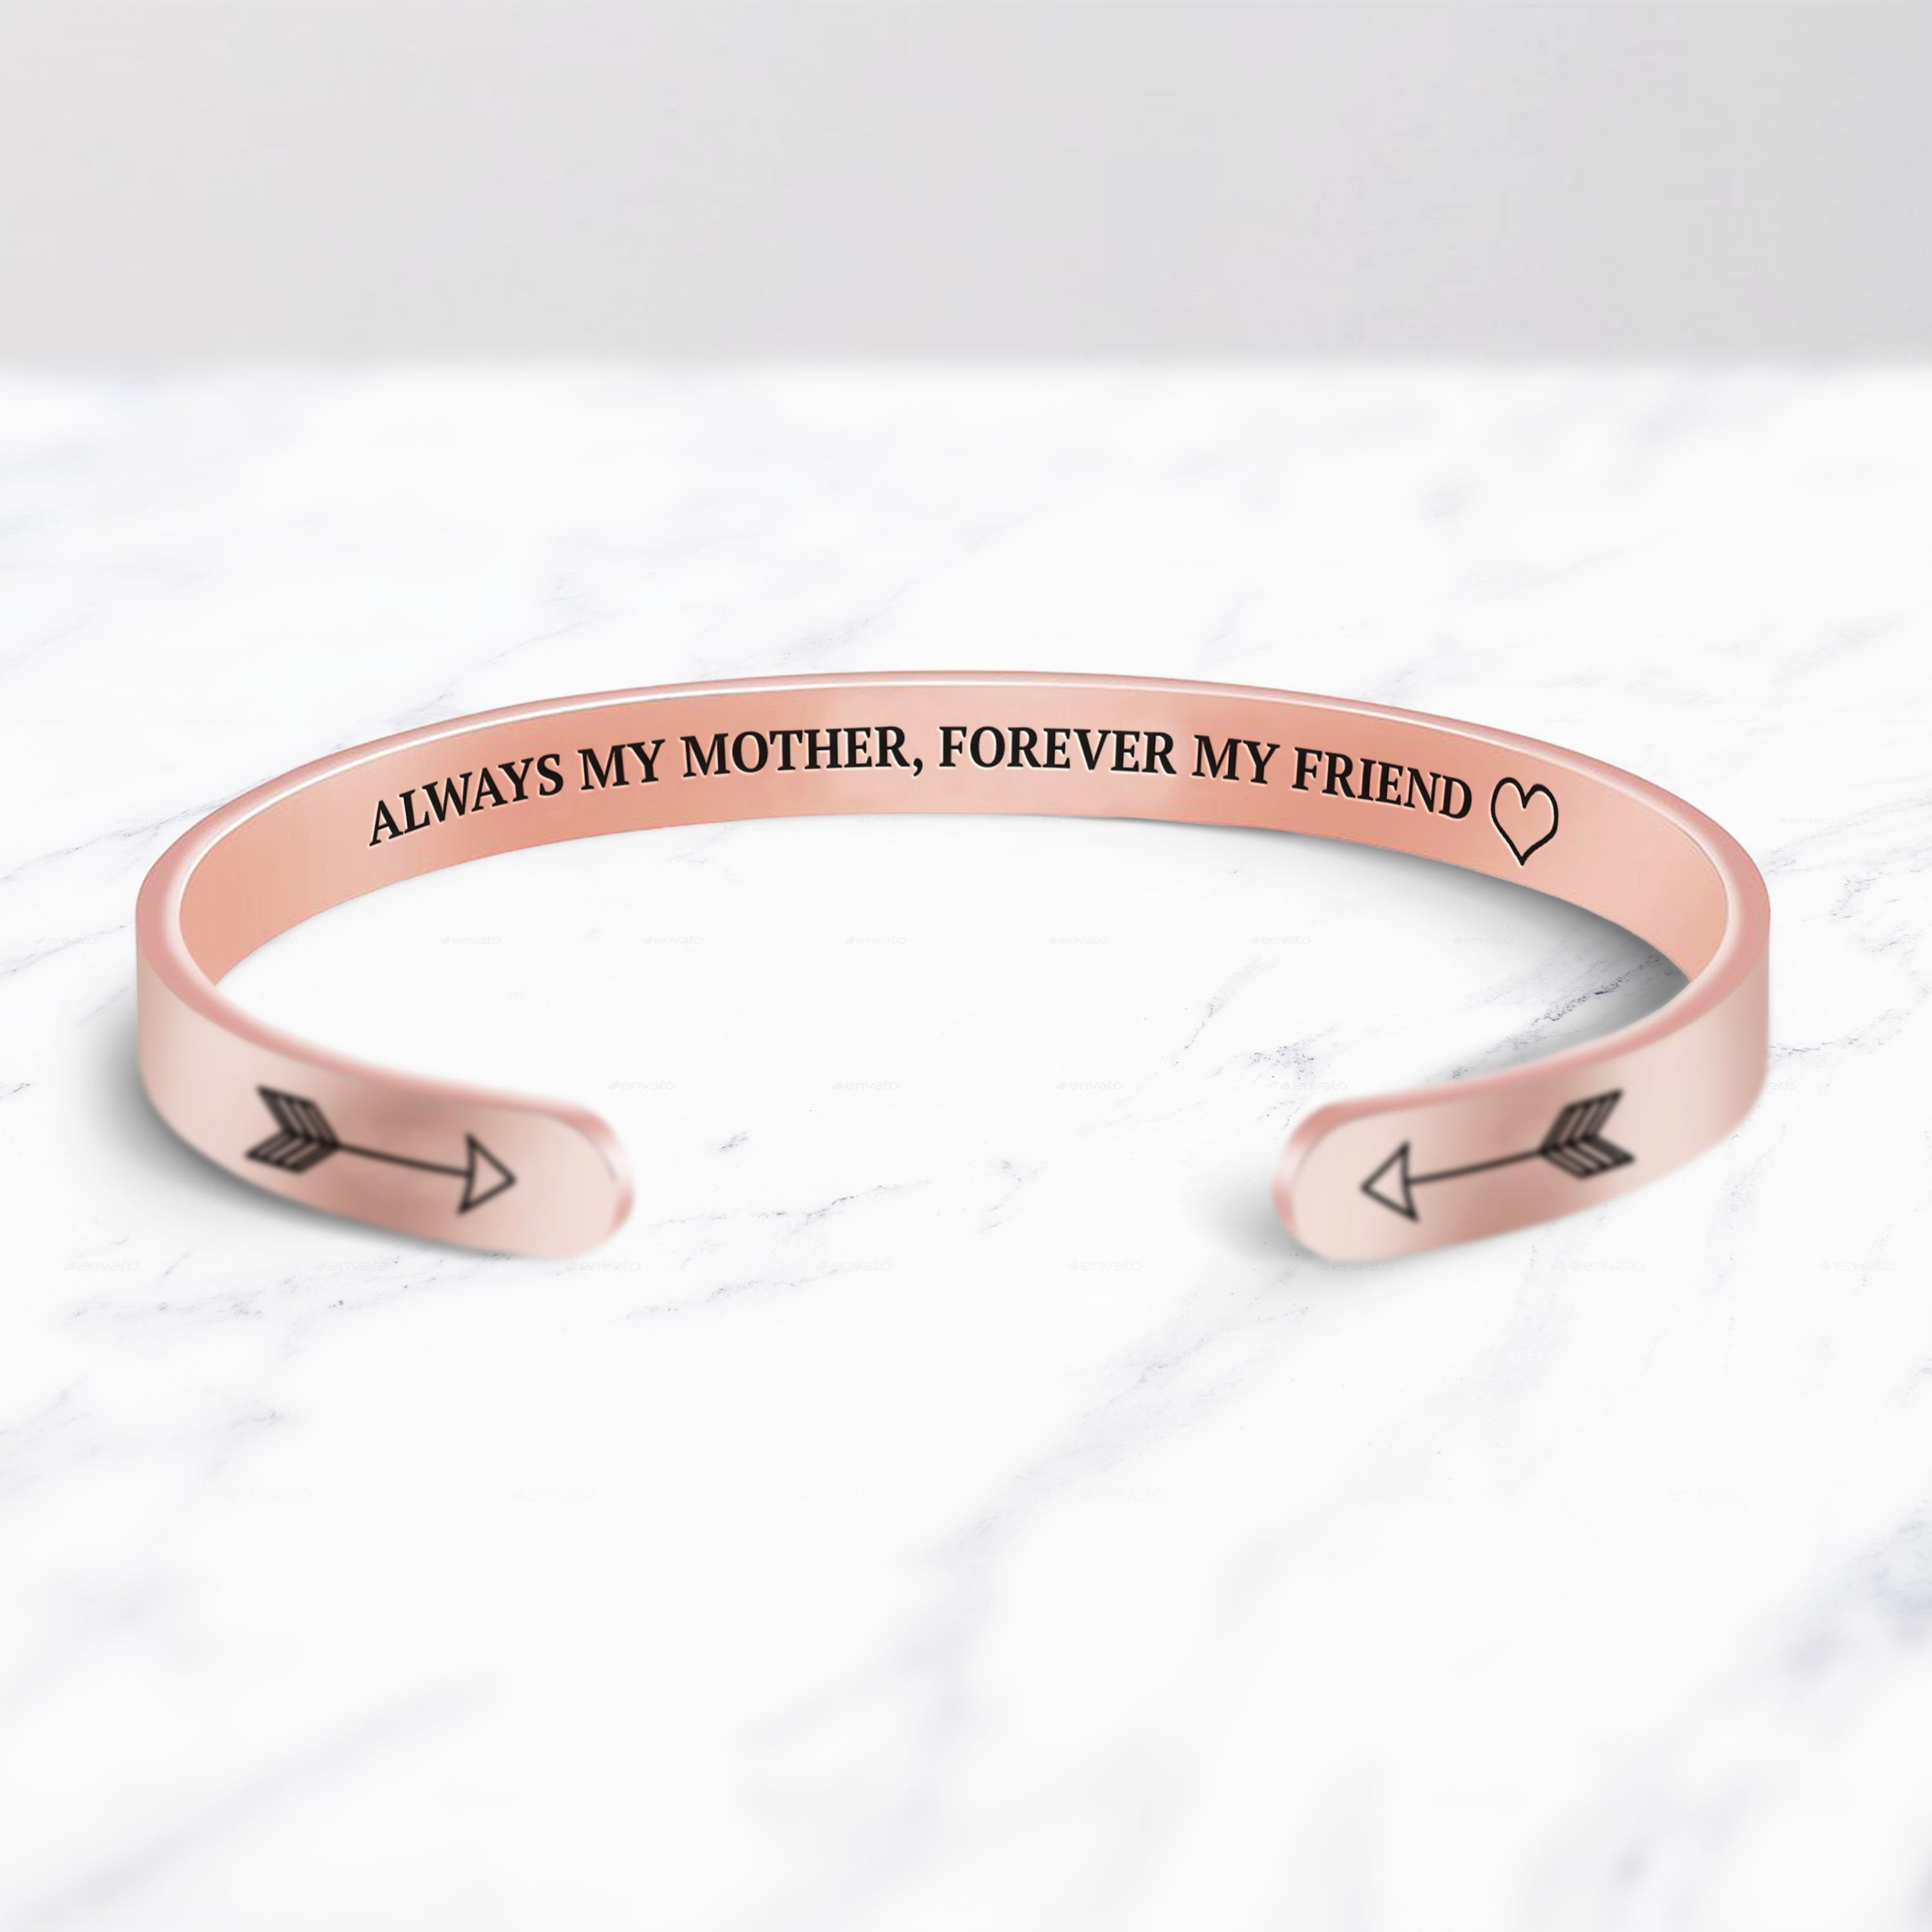 Always My Mother, Forever My Friend Cuff Bracelet bracelet with rose gold plating on a marble background